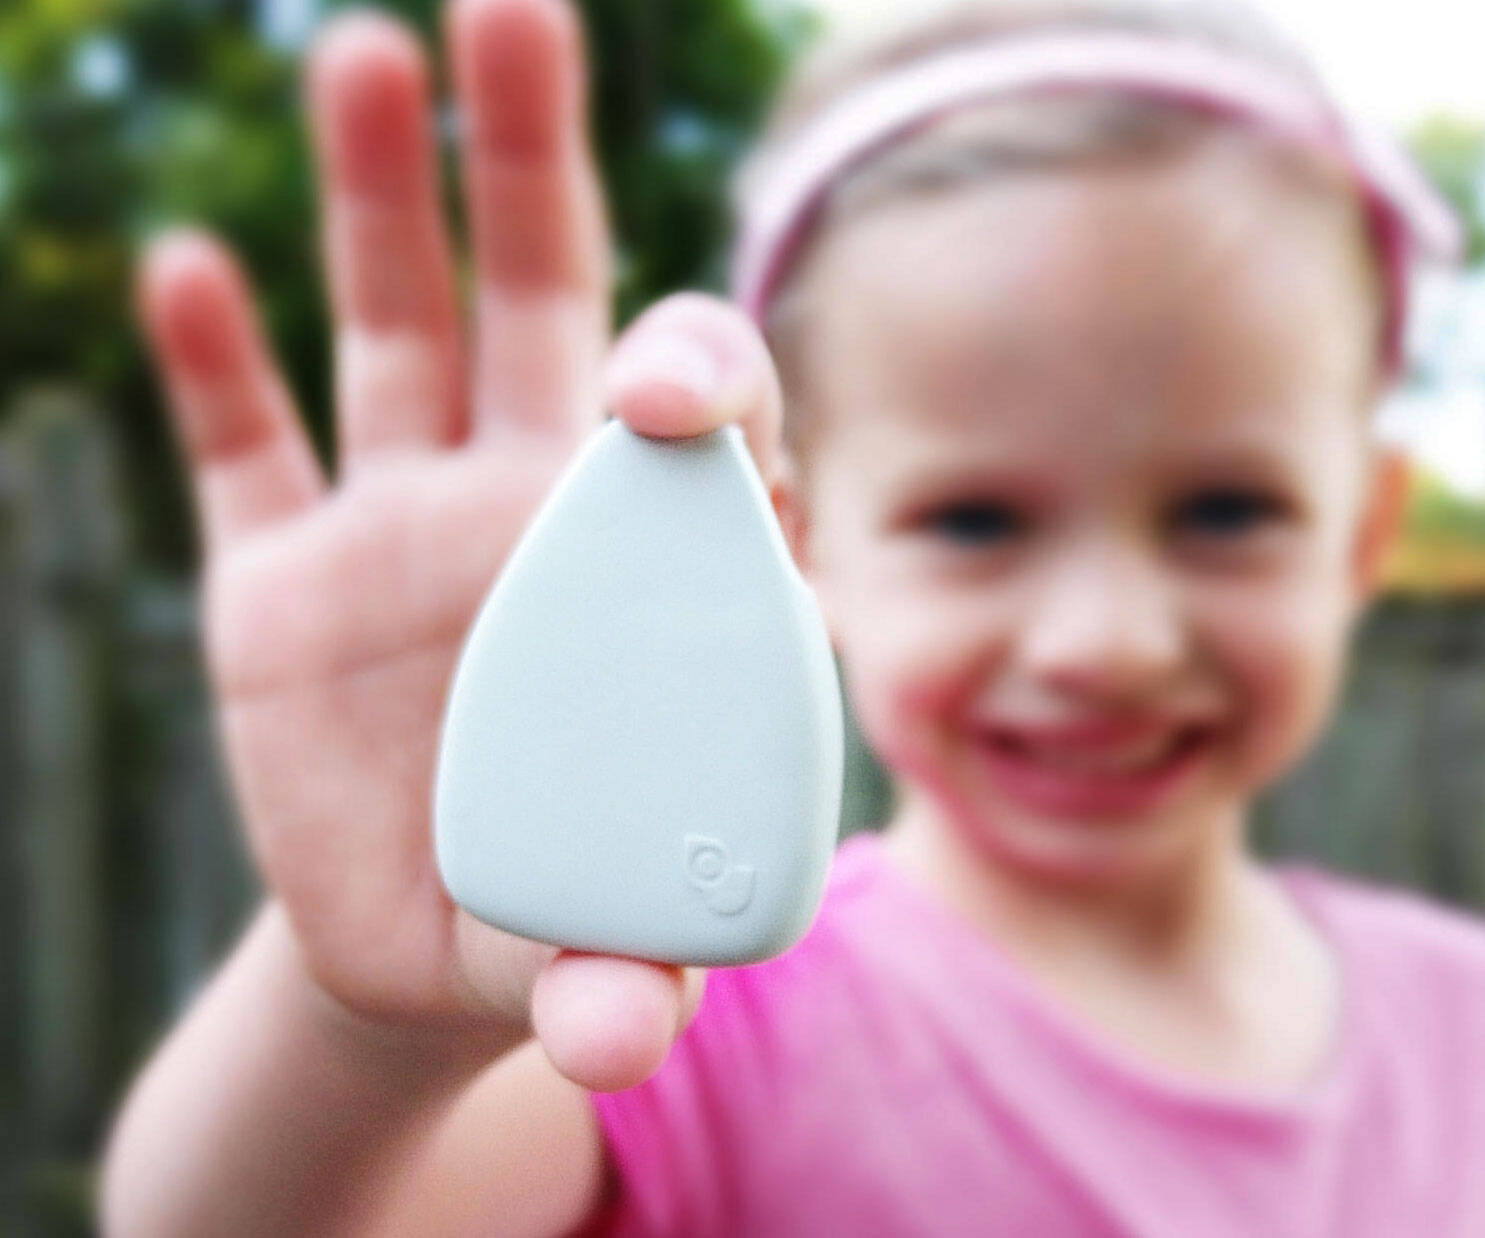 Jiobit Real-Time Location Tracker For Kids - http://coolthings.us